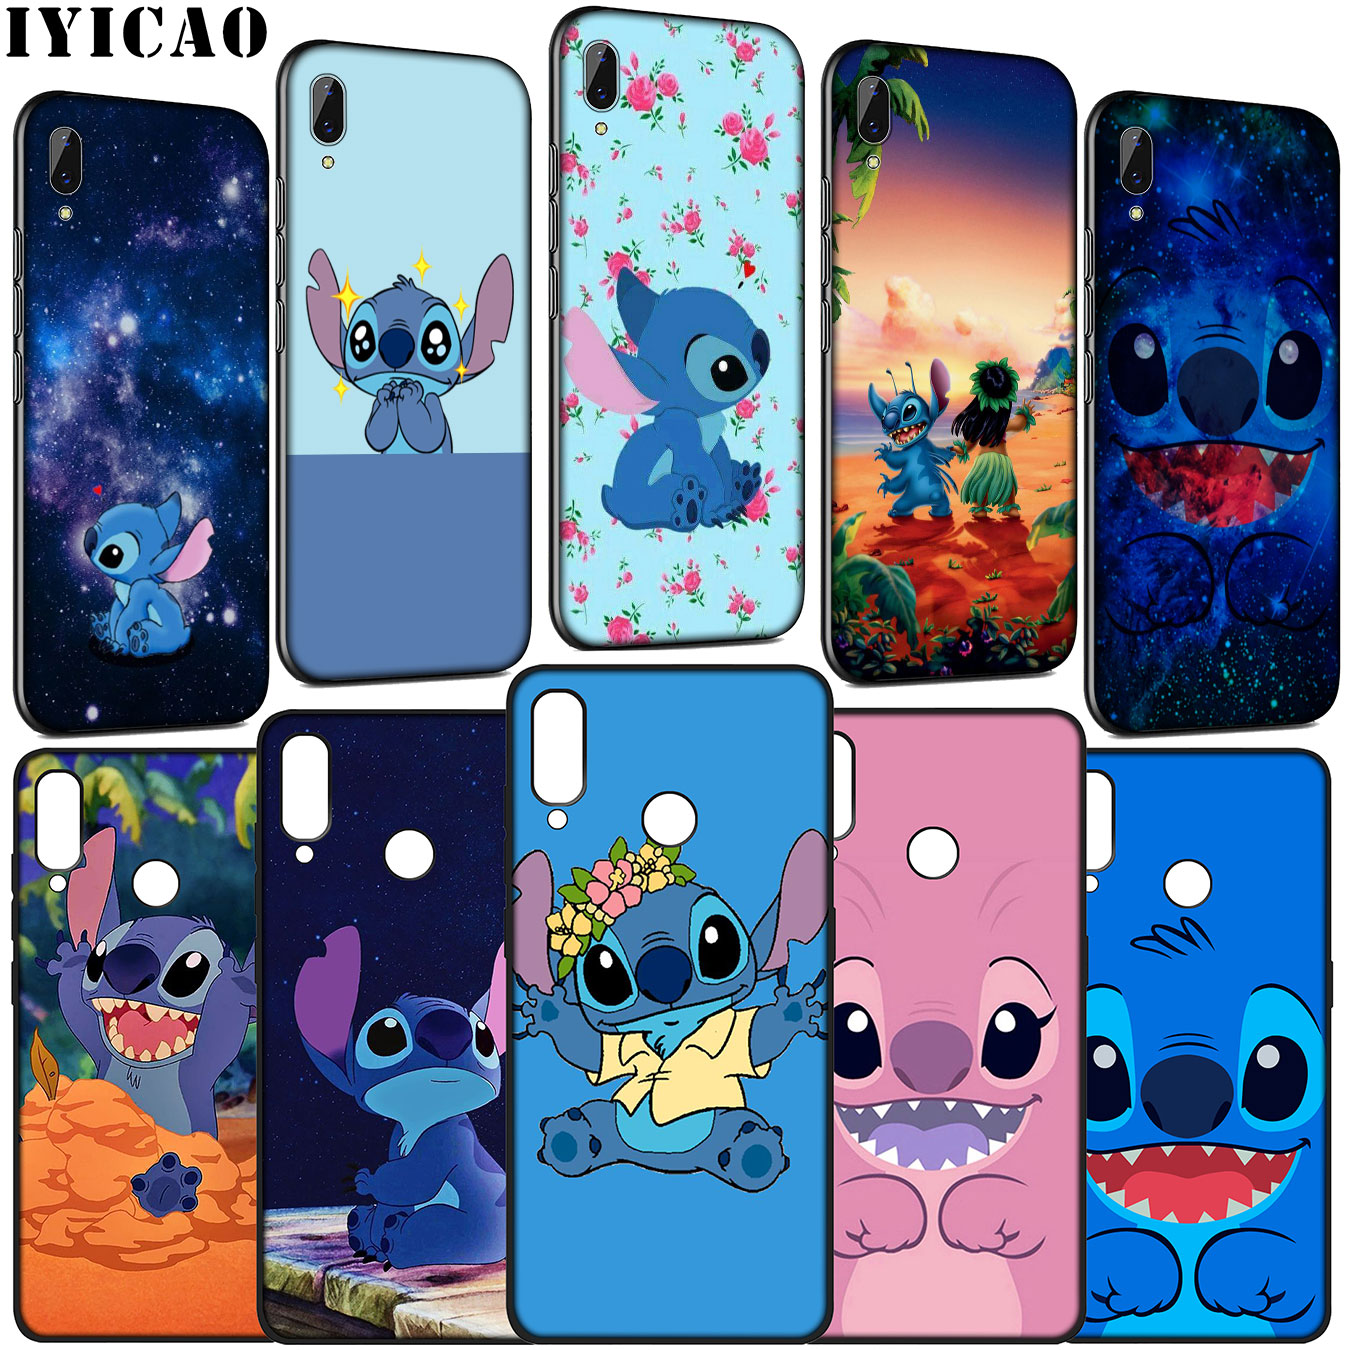 IYICAO Lilo Stitch <font><b>Anime</b></font> Cartoon <font><b>Soft</b></font> Silicone <font><b>Case</b></font> for Huawei Y9 Y7 Y6 Prime 2019 <font><b>Honor</b></font> 20 10 9 9X 8C 8X <font><b>8</b></font> Lite 7C 7X 7A Pro image